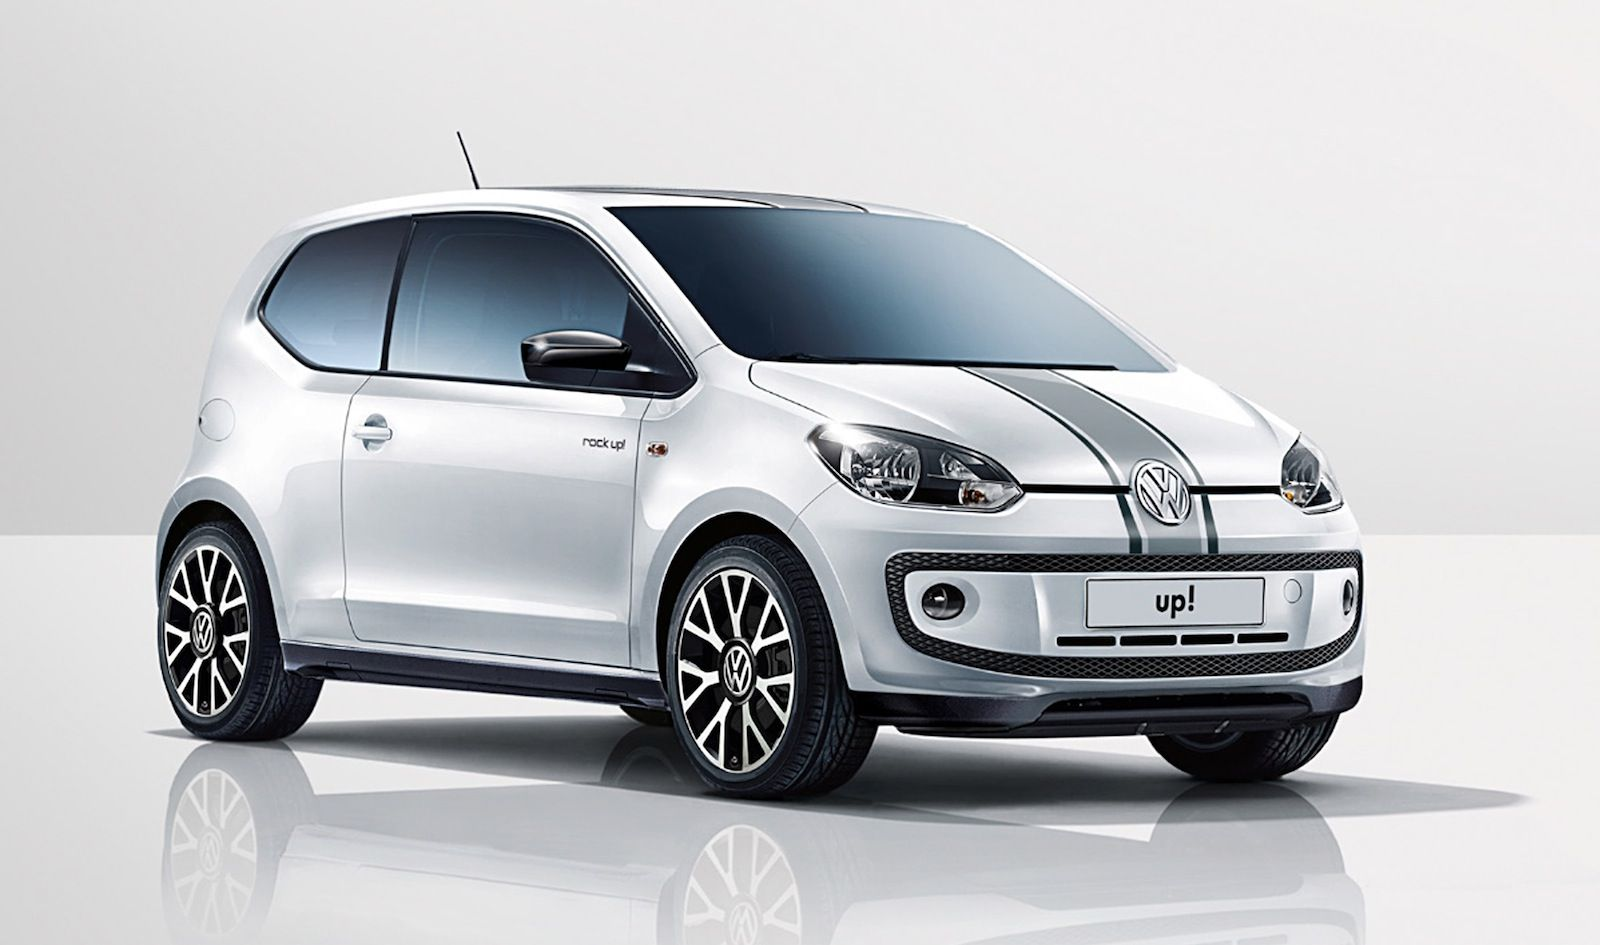 Volkswagen Rock Up And Groove Up Hit The High Notes Photos 1